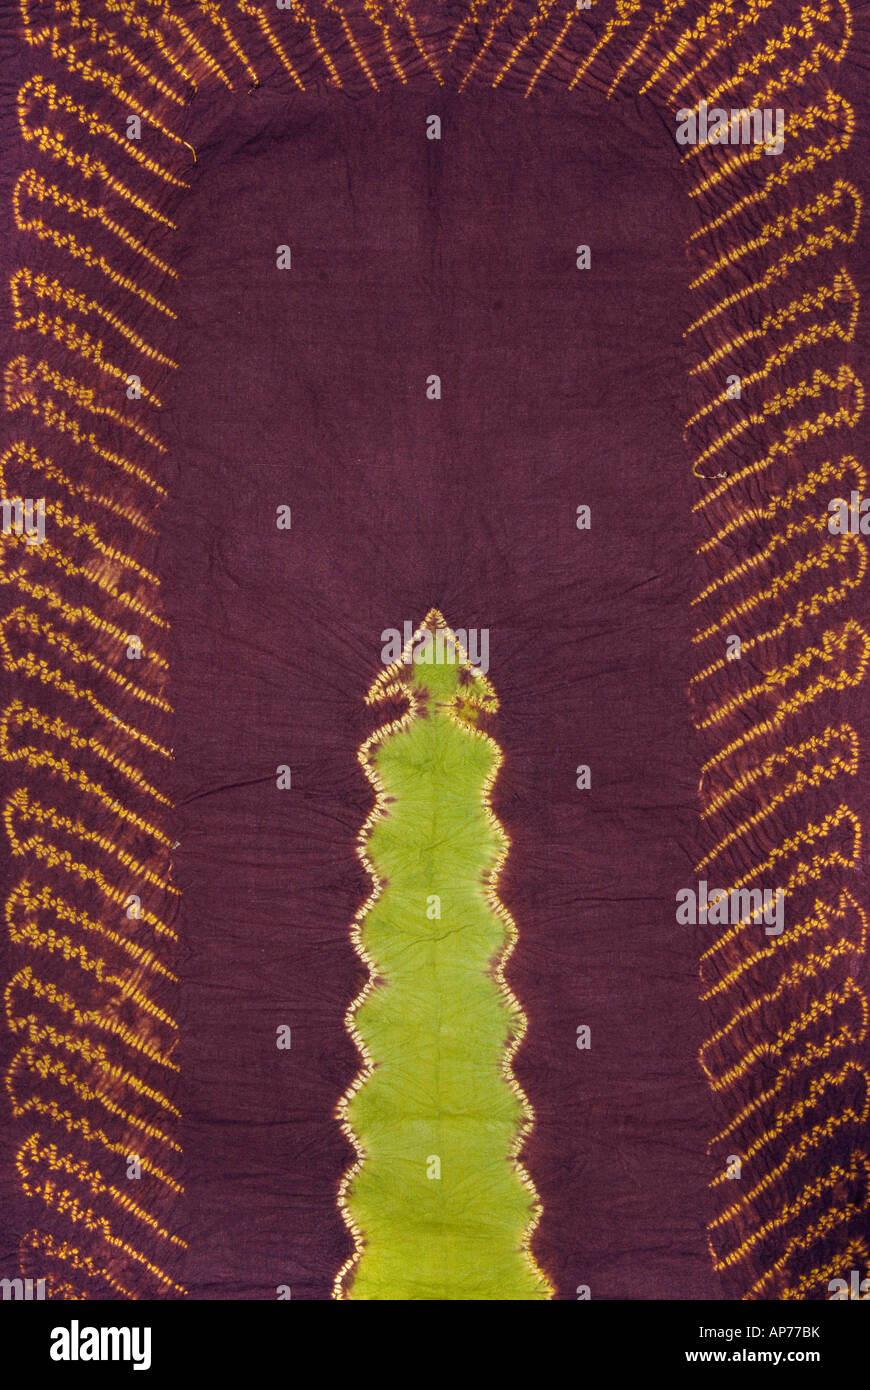 Detail of plangi and tritik resist dyed silk fabric from Sumatra Indonesia - Stock Image